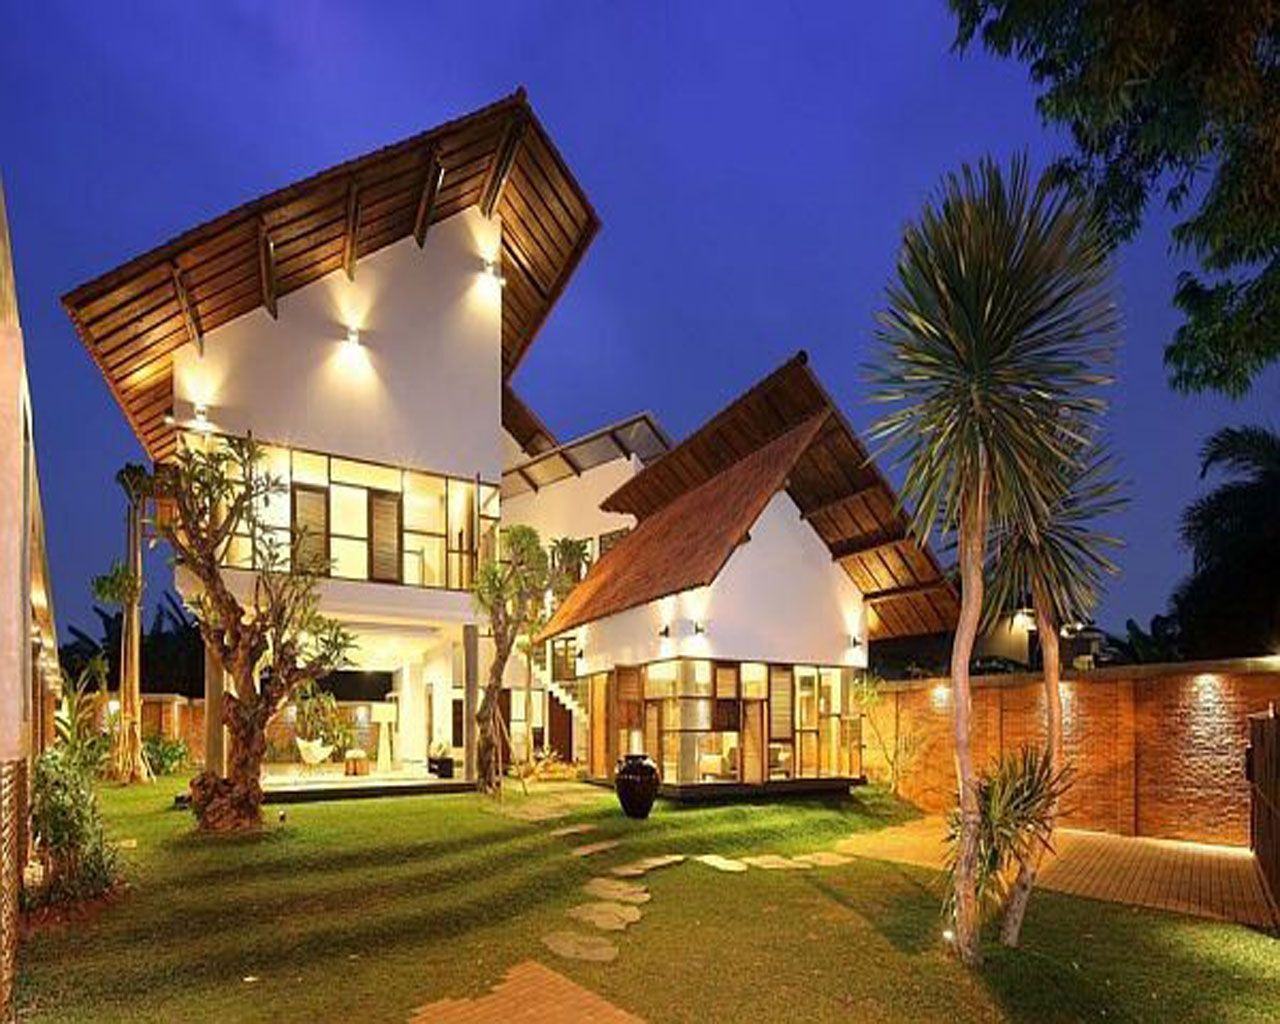 Architecture ideas 30 inspiration tropical house design for Architecture design a house